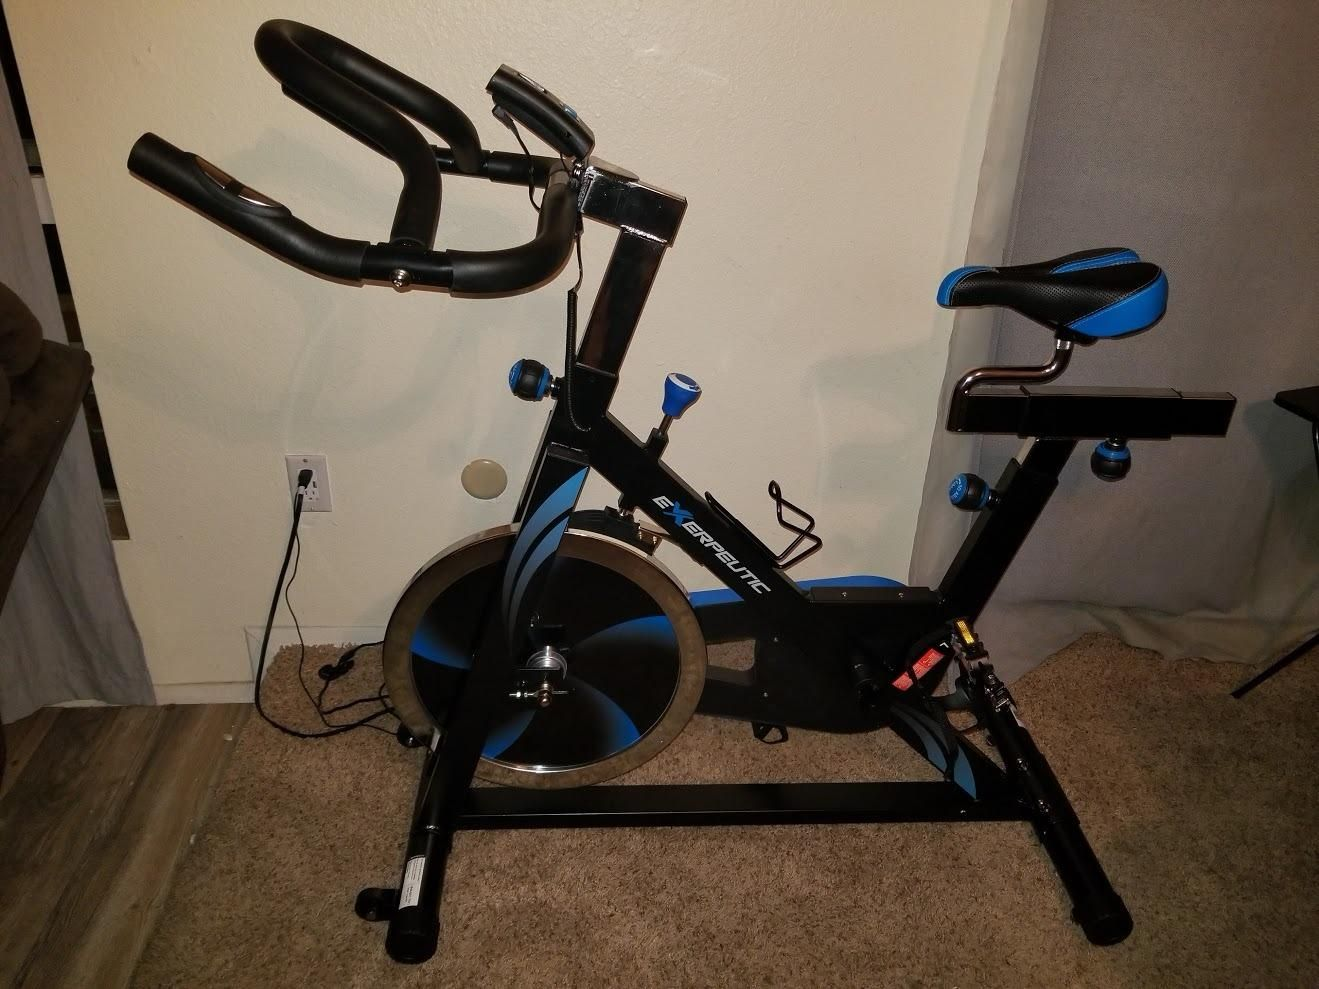 Best Spin Bike Reviews In 2020 Spin Bikes Bike Riding Benefits Bike